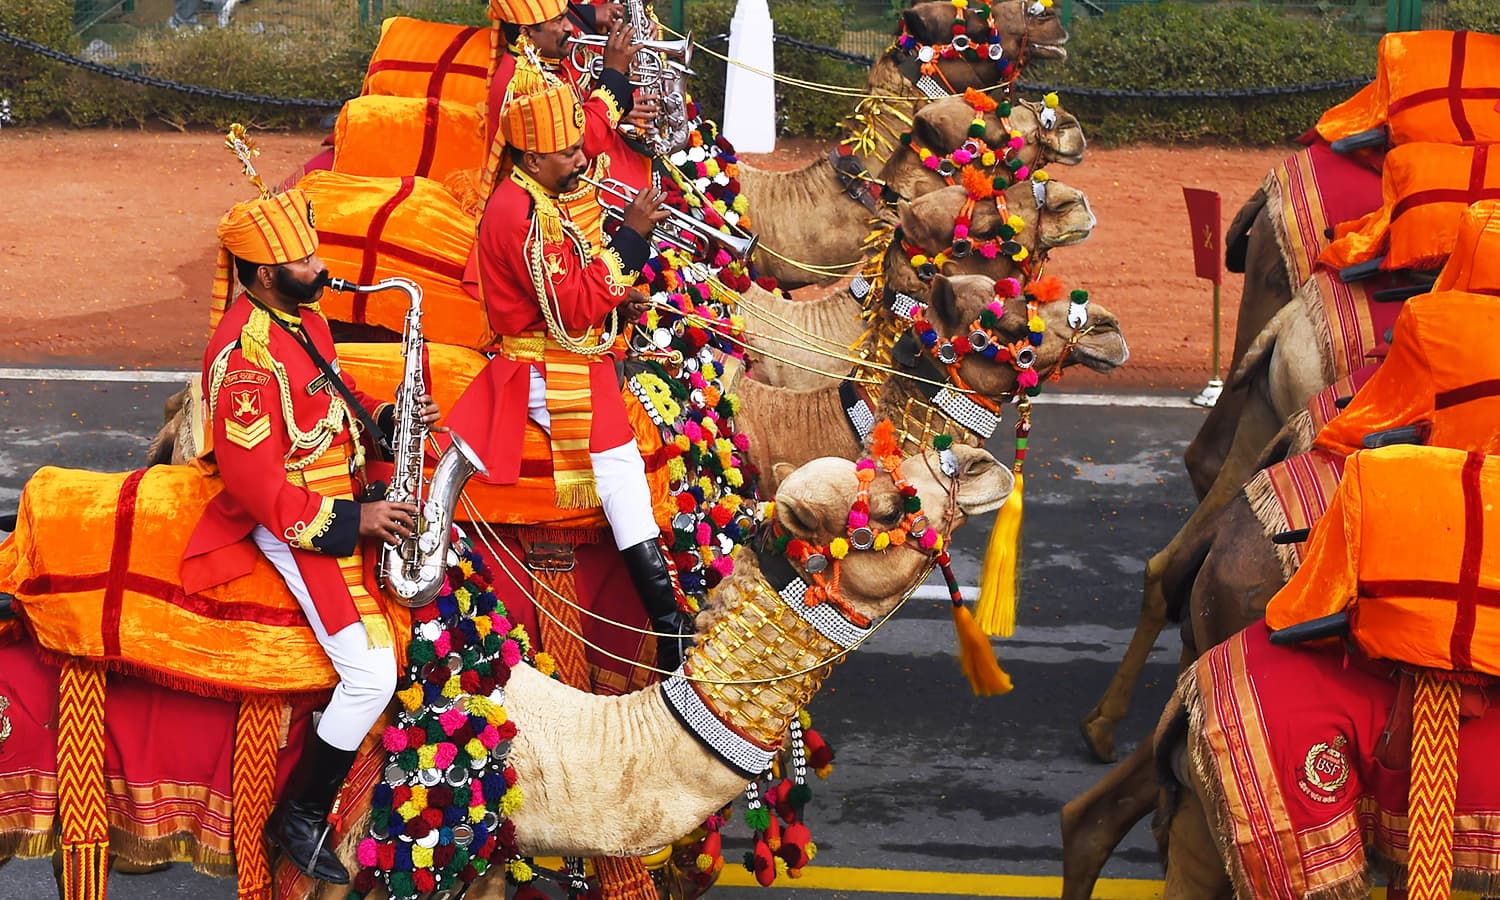 A member of the band of the Border Security Force contingent plays a saxophone on his camel during the parade. ─ AFP